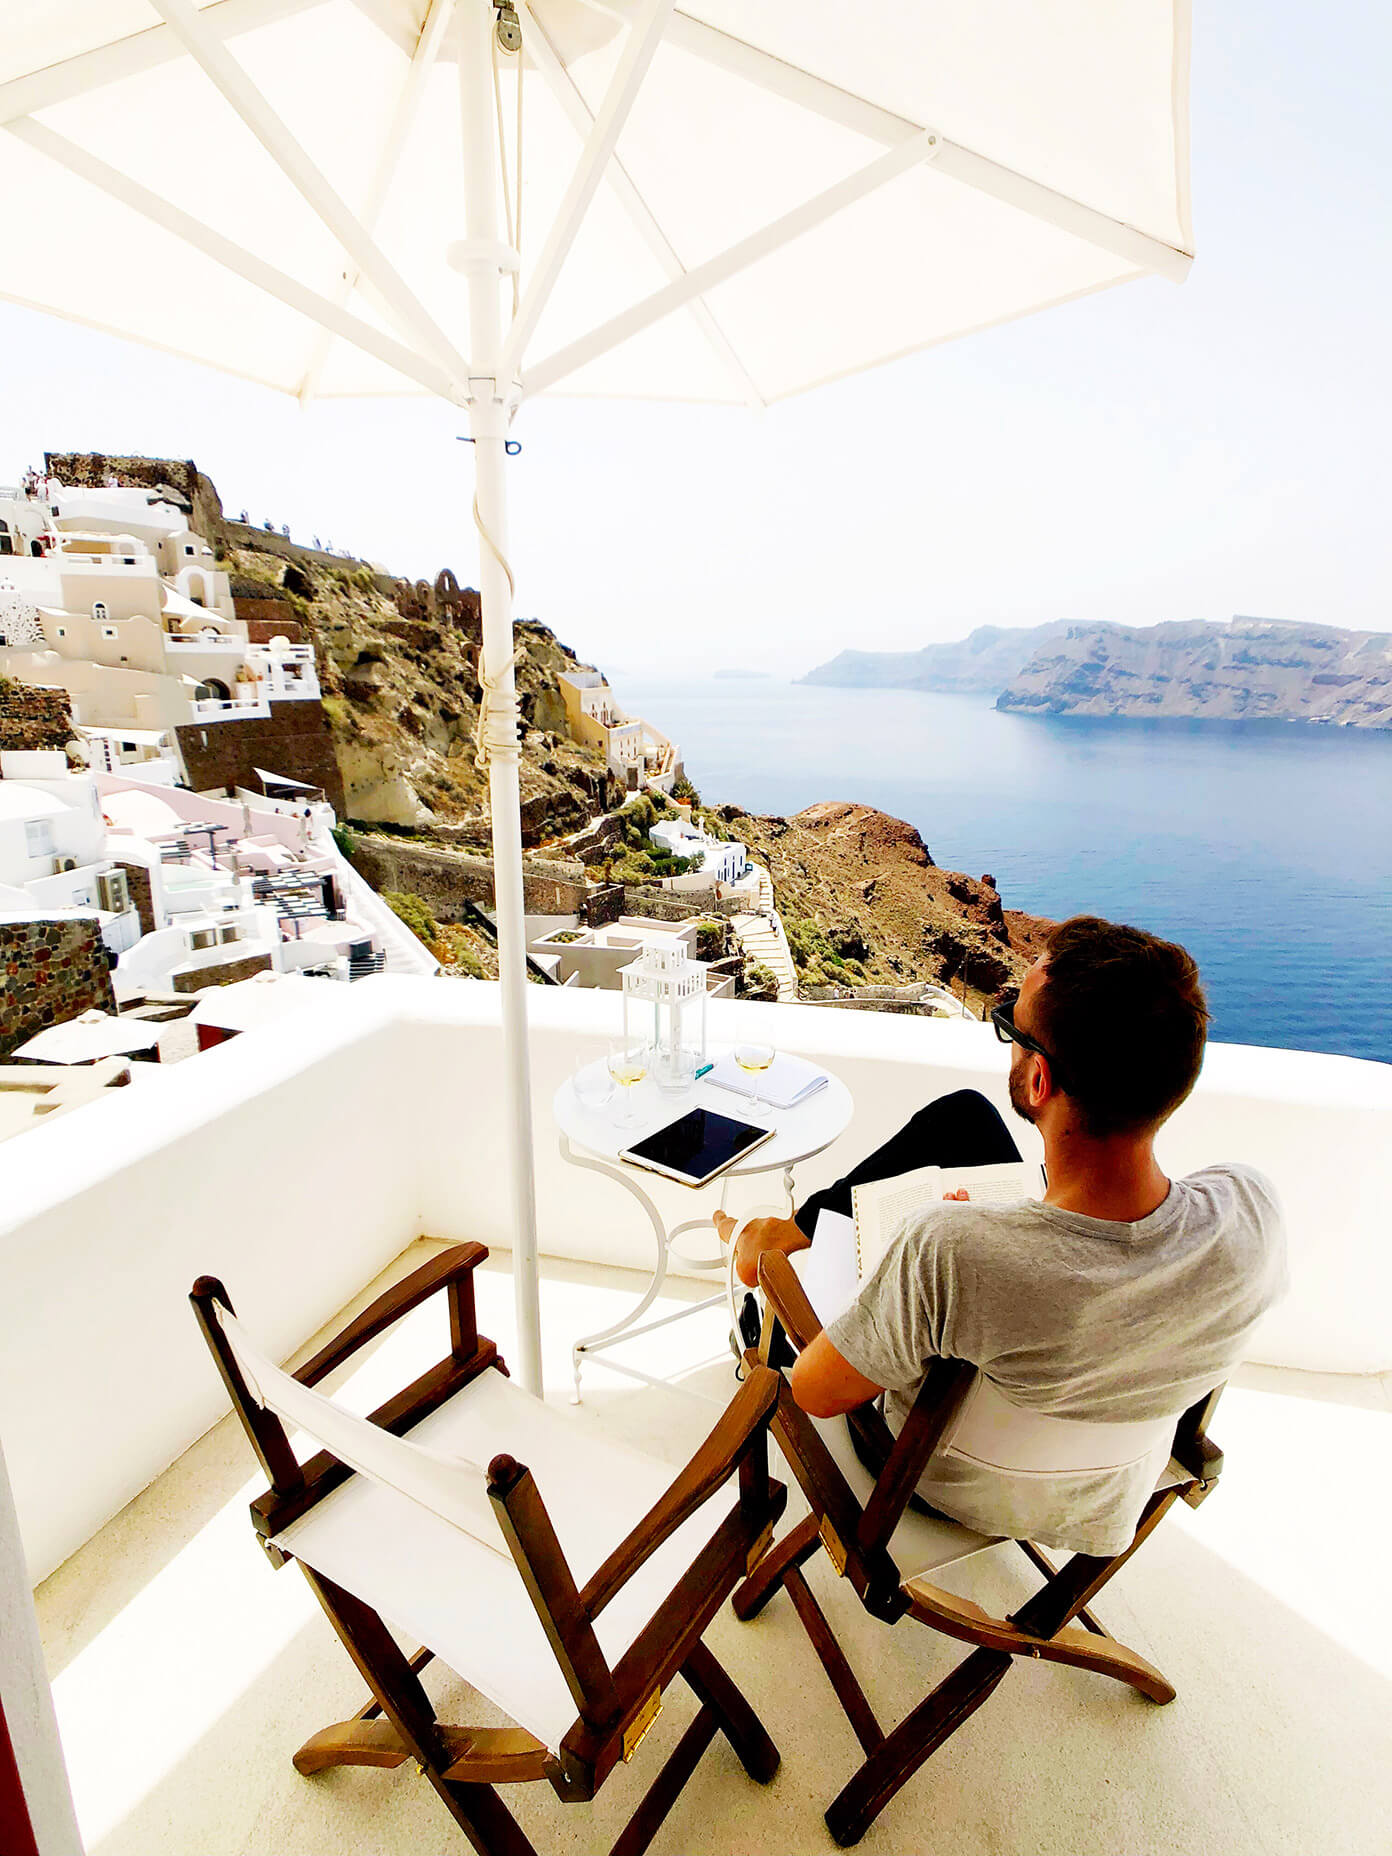 Hotel Balcony at Oia Mare Villas in Santorini Greece